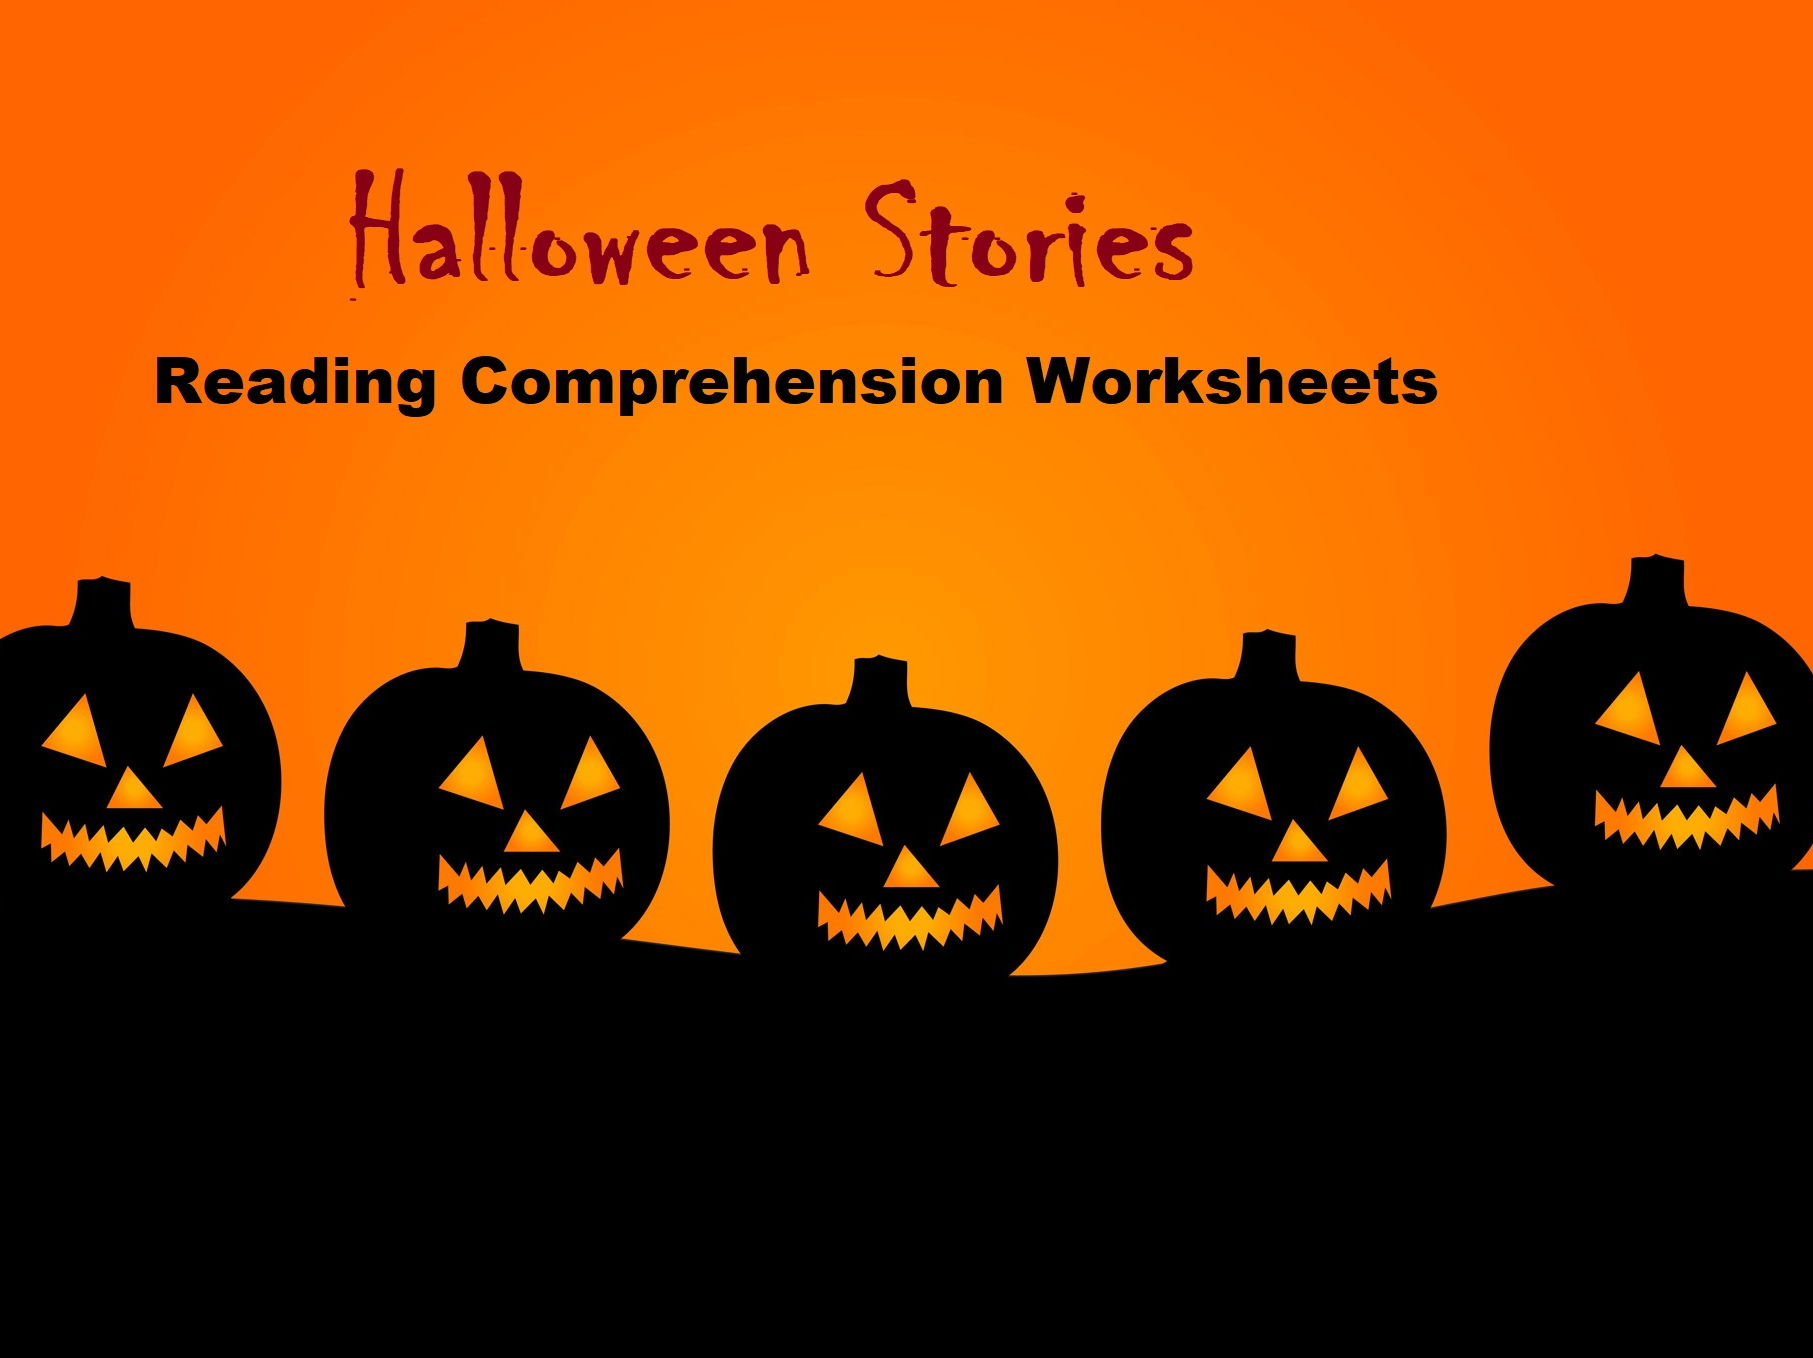 Halloween Stories - Reading Comprehension Worksheets